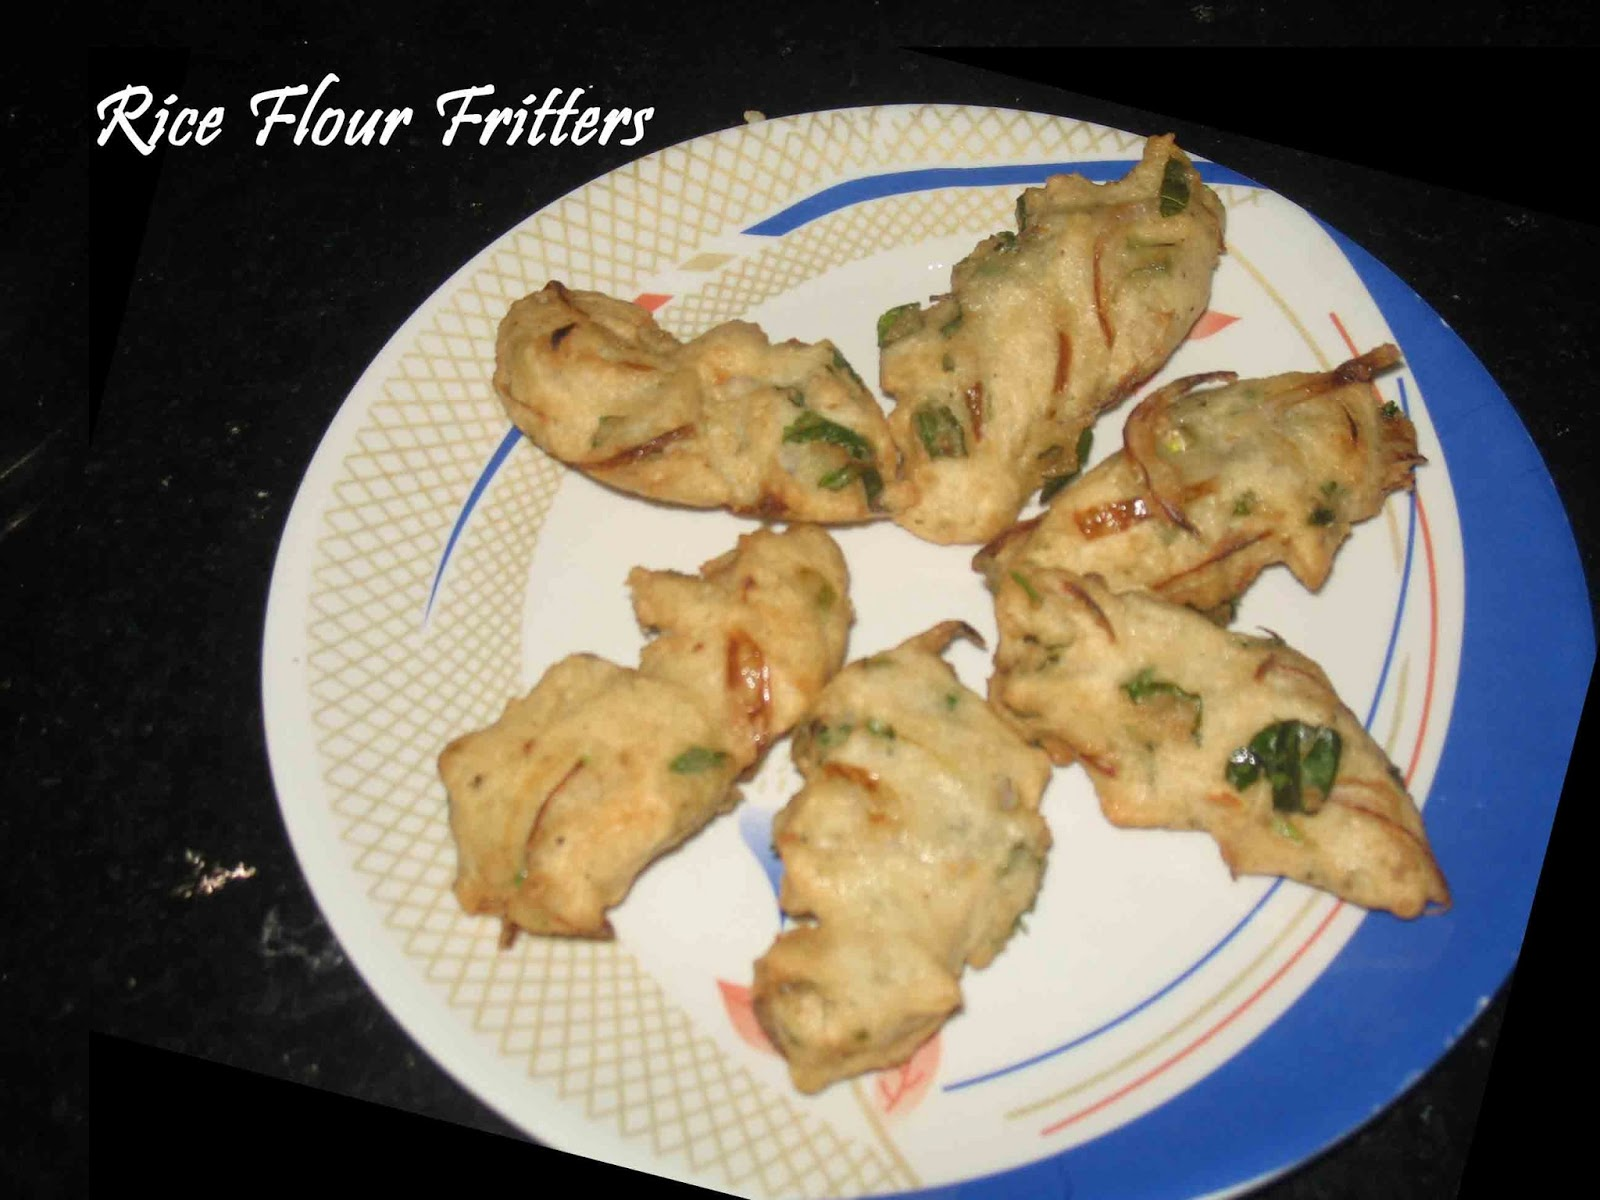 Rice flour fritters